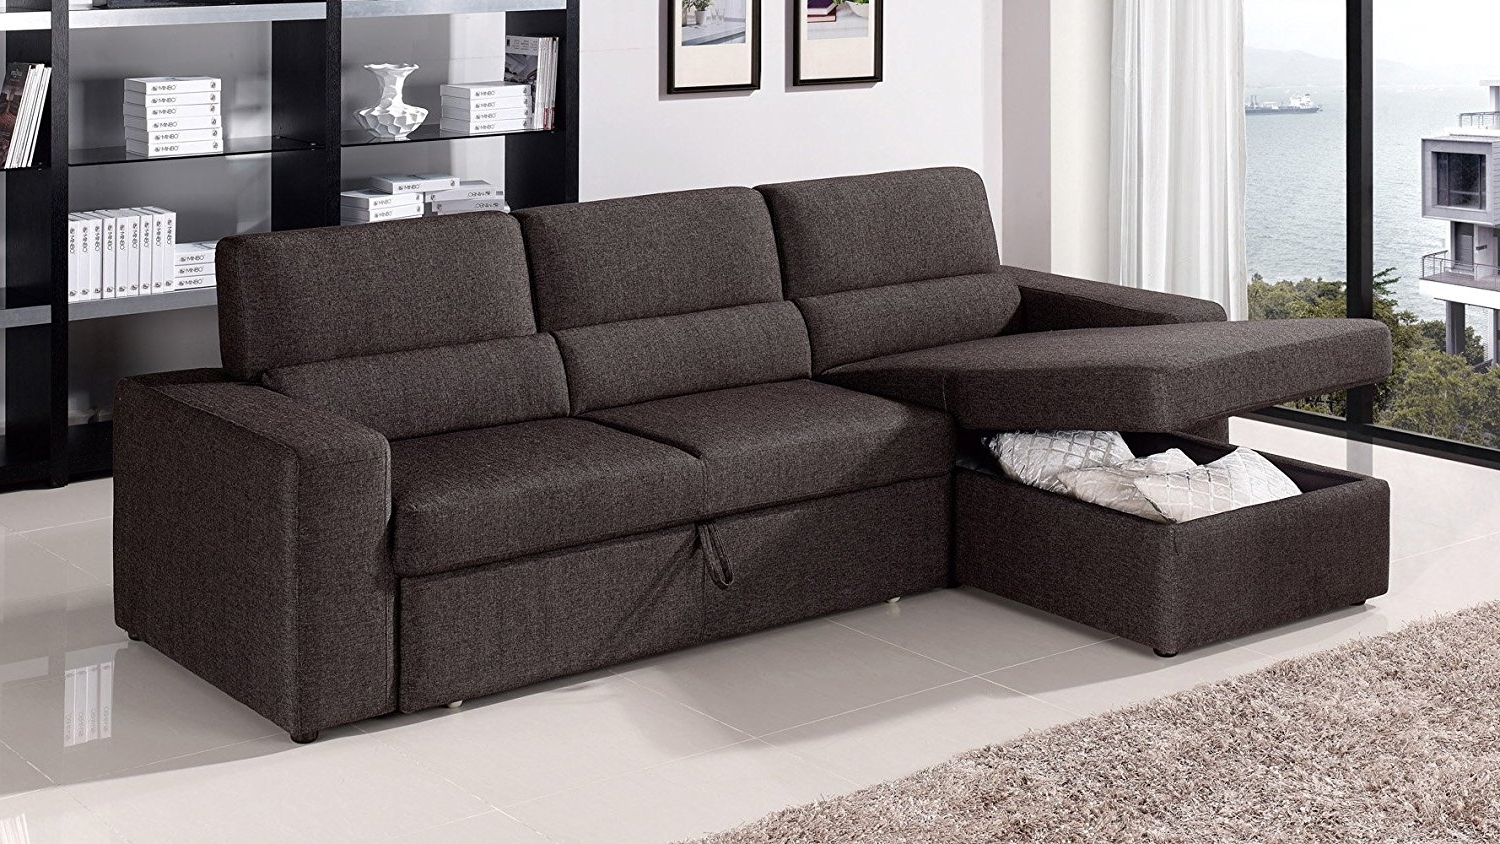 2017 Amazon: Black/brown Clubber Sleeper Sectional Sofa – Left Intended For Sectional Sofas With Sleeper (View 10 of 15)